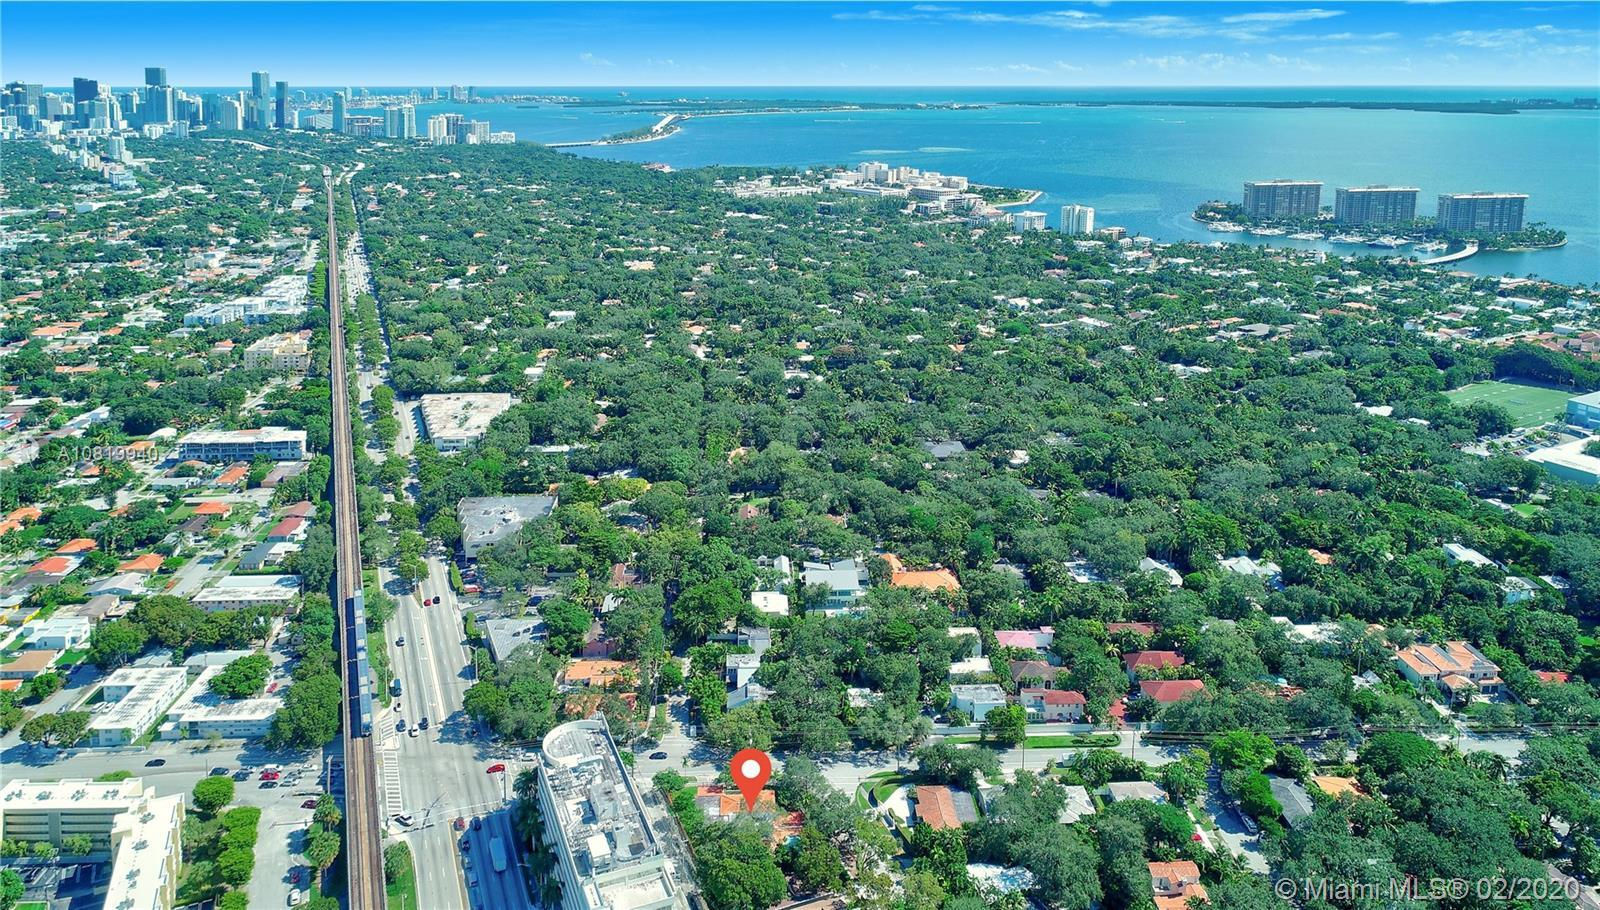 Large Single Family Home on a large Corner Lot, with 6 Bedrooms and 5 Bathrooms in the Coconut Grove